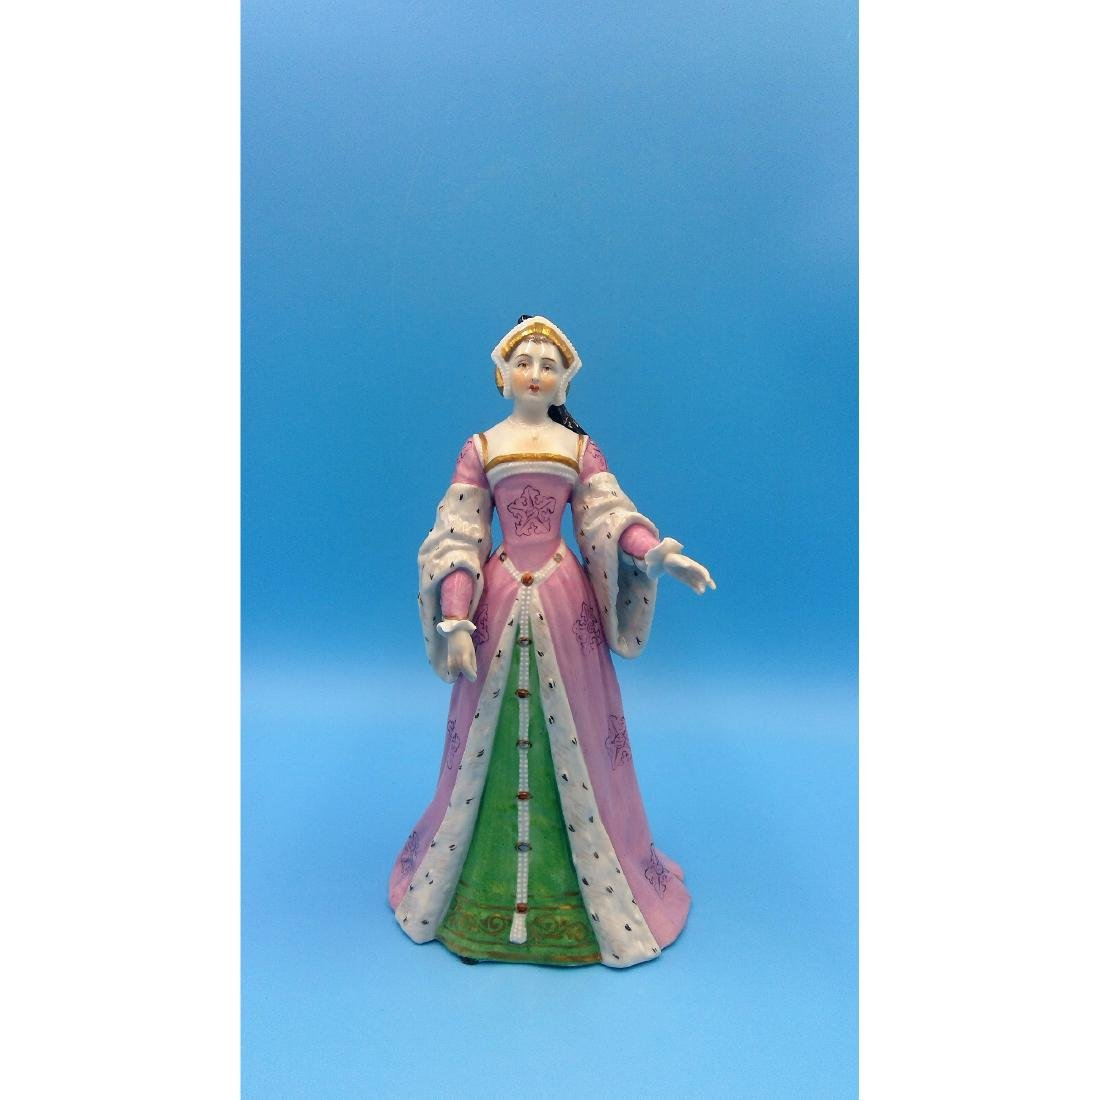 CARL THIEME GERMAN PORCELAIN FIGURINE PRINCESS